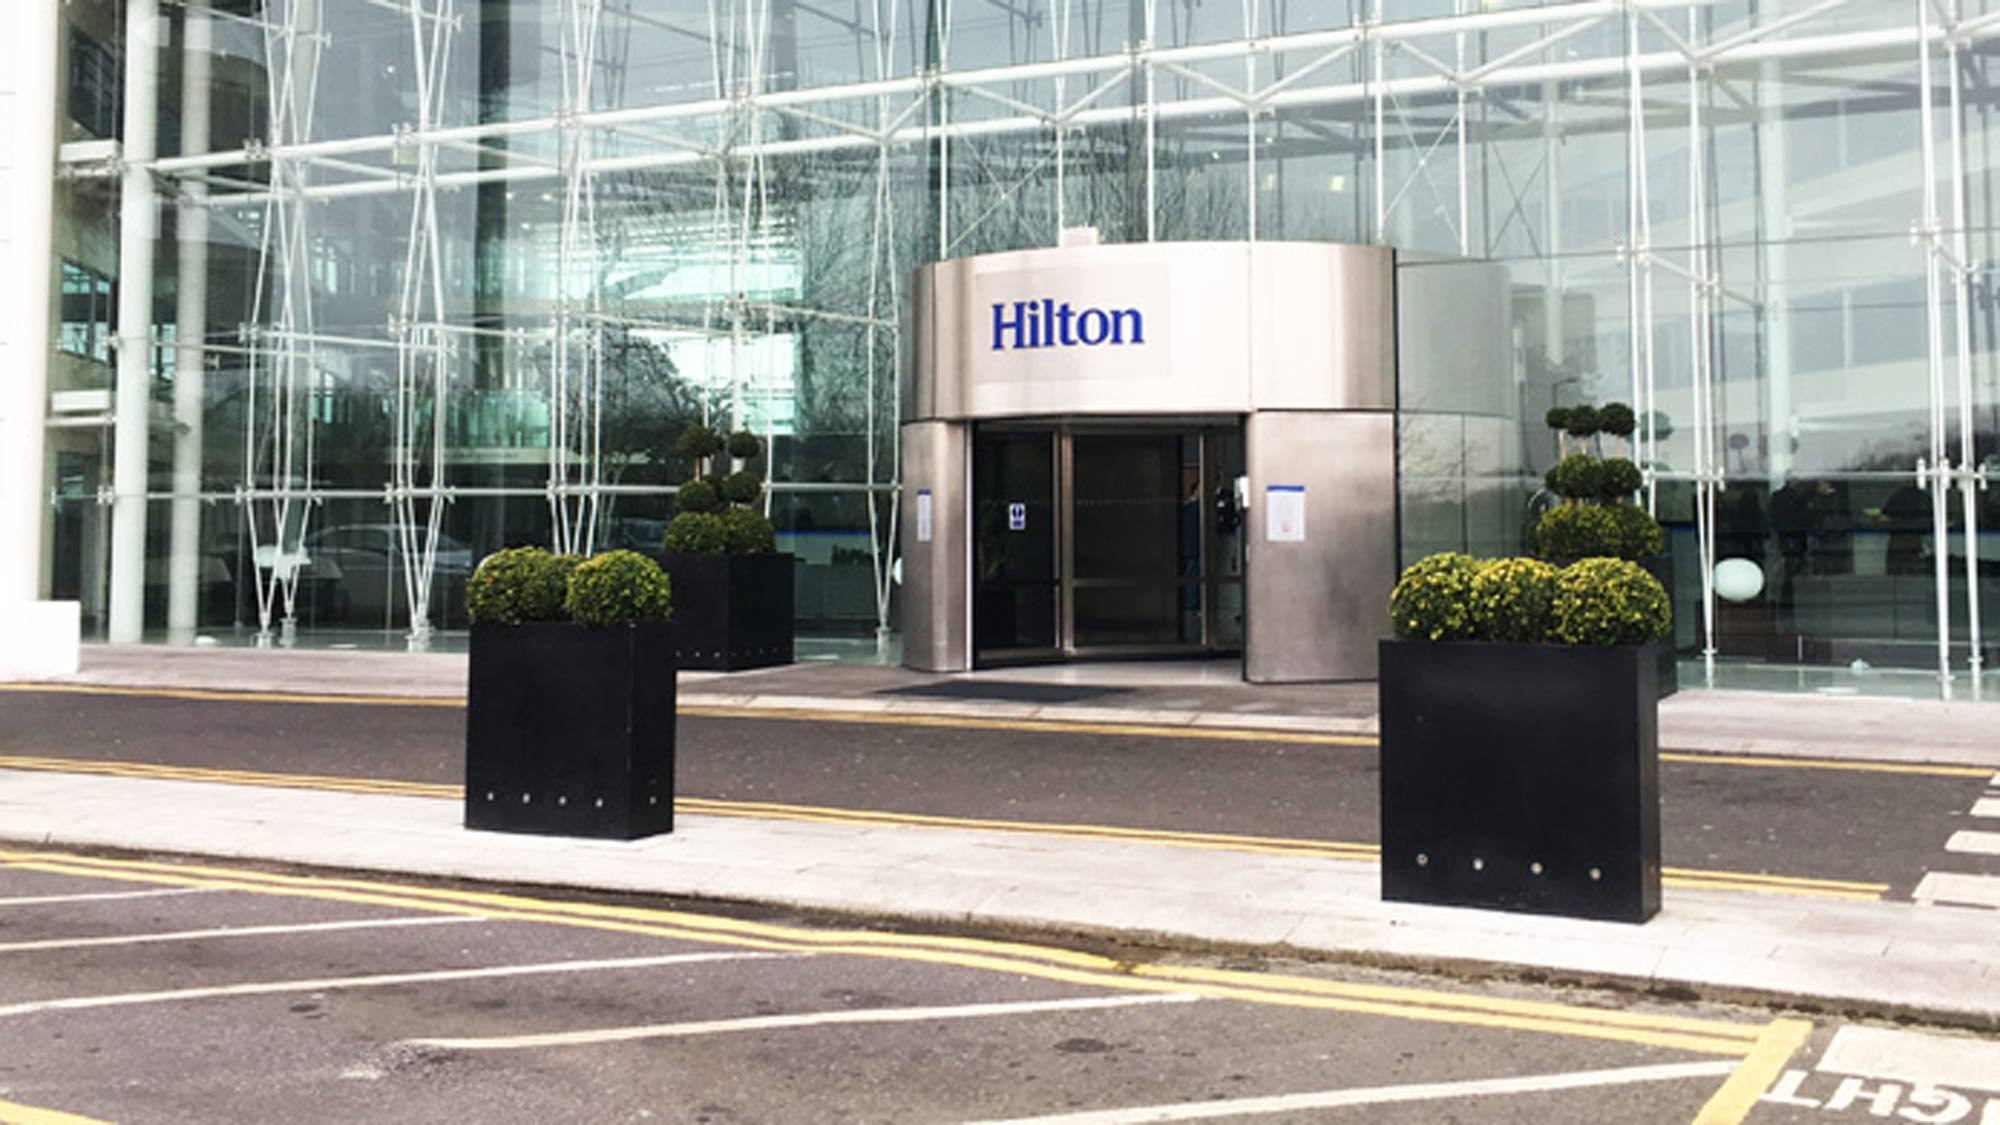 Heathrow Hilton